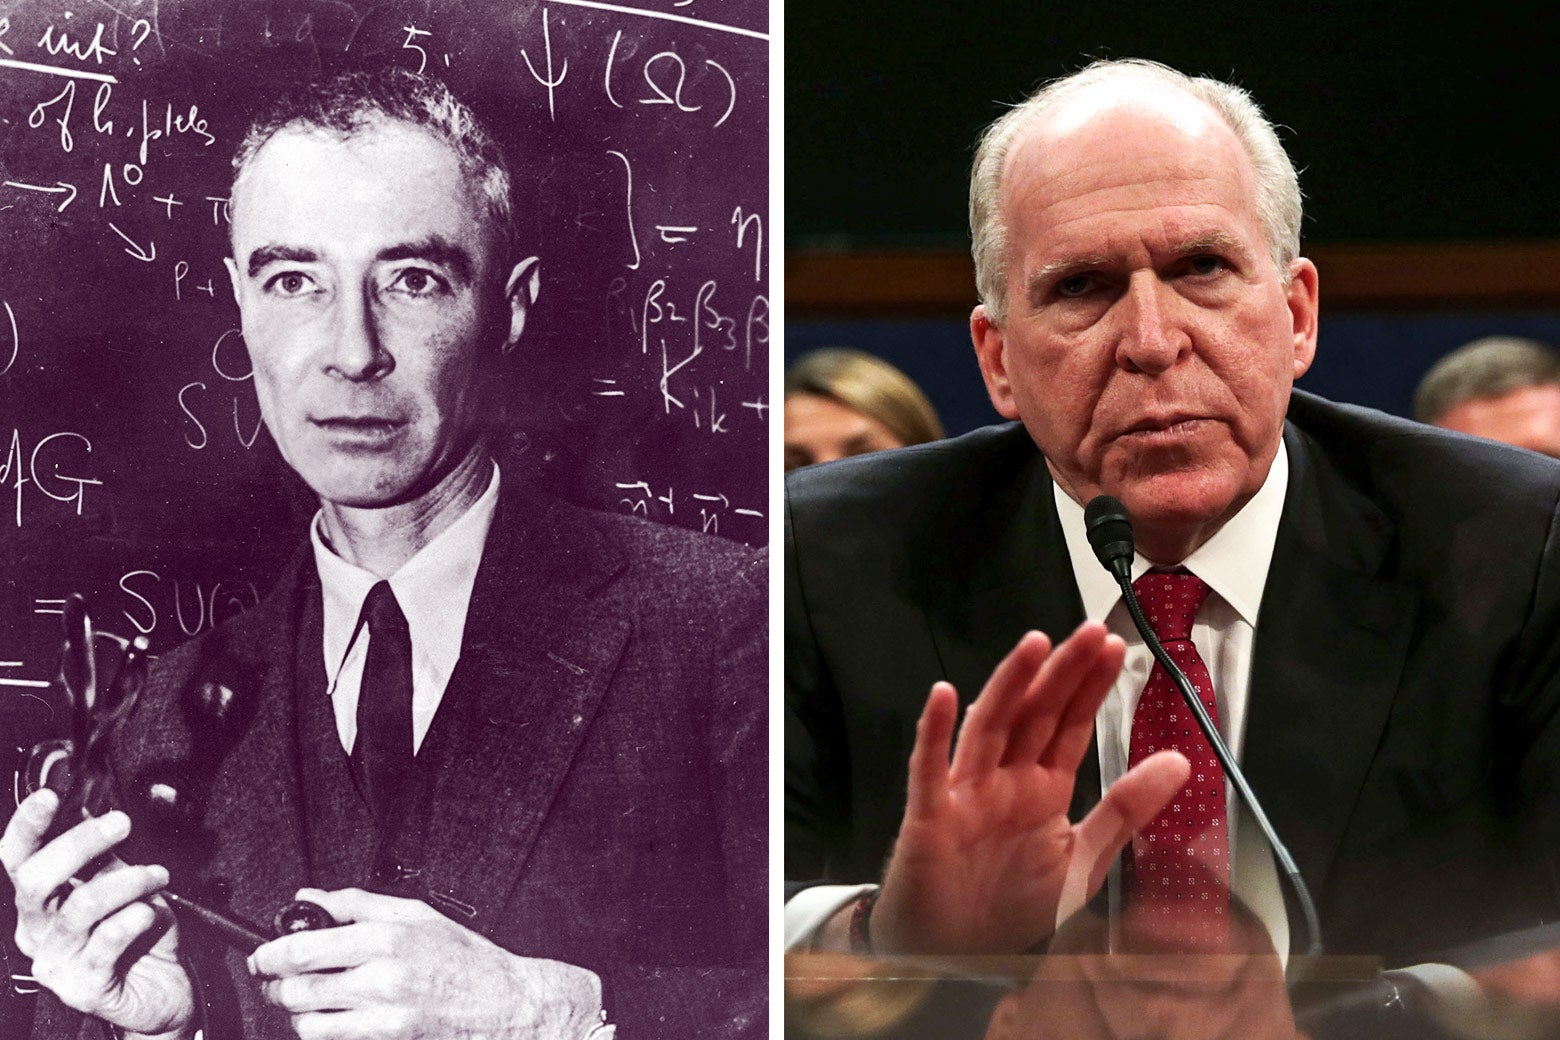 Robert Oppenheimer in front of a chalkboard, and John Brennan testifying before Congress.